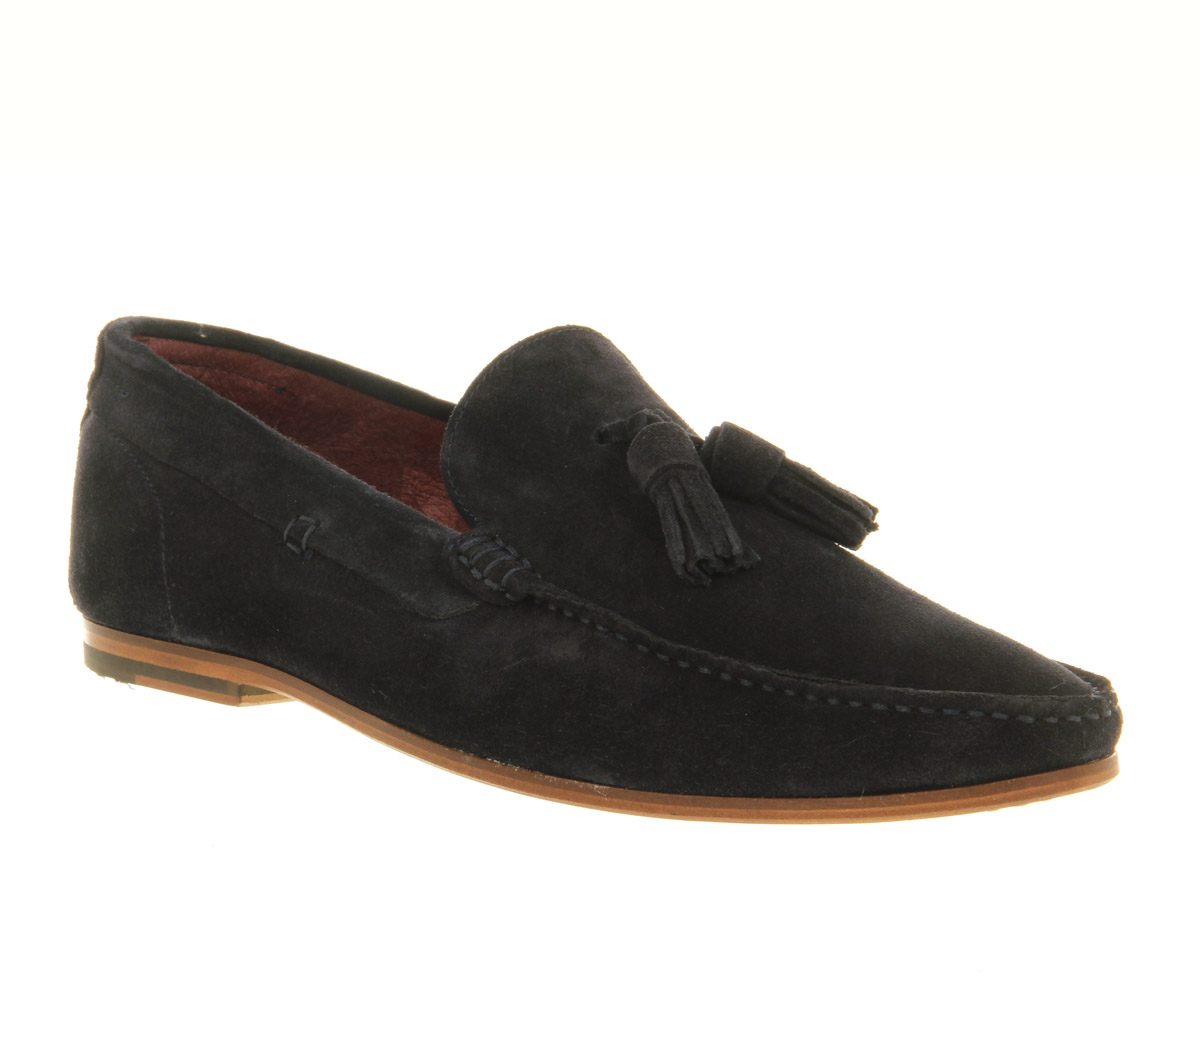 mens poste lorenzo tassle loafer navy suede formal shoes